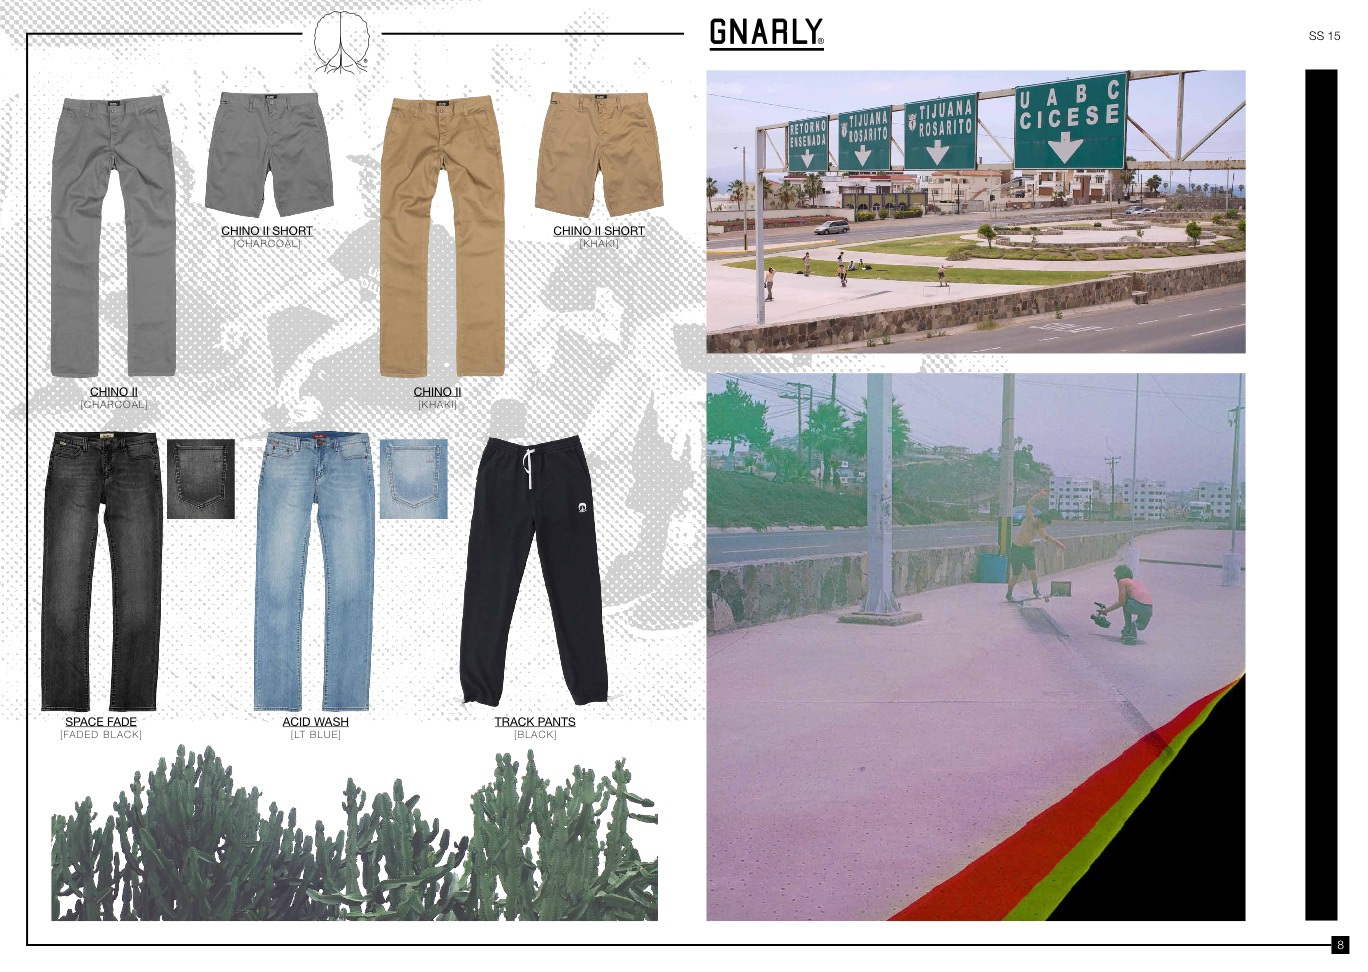 Gnarly_SS15-Catalog_Final 5